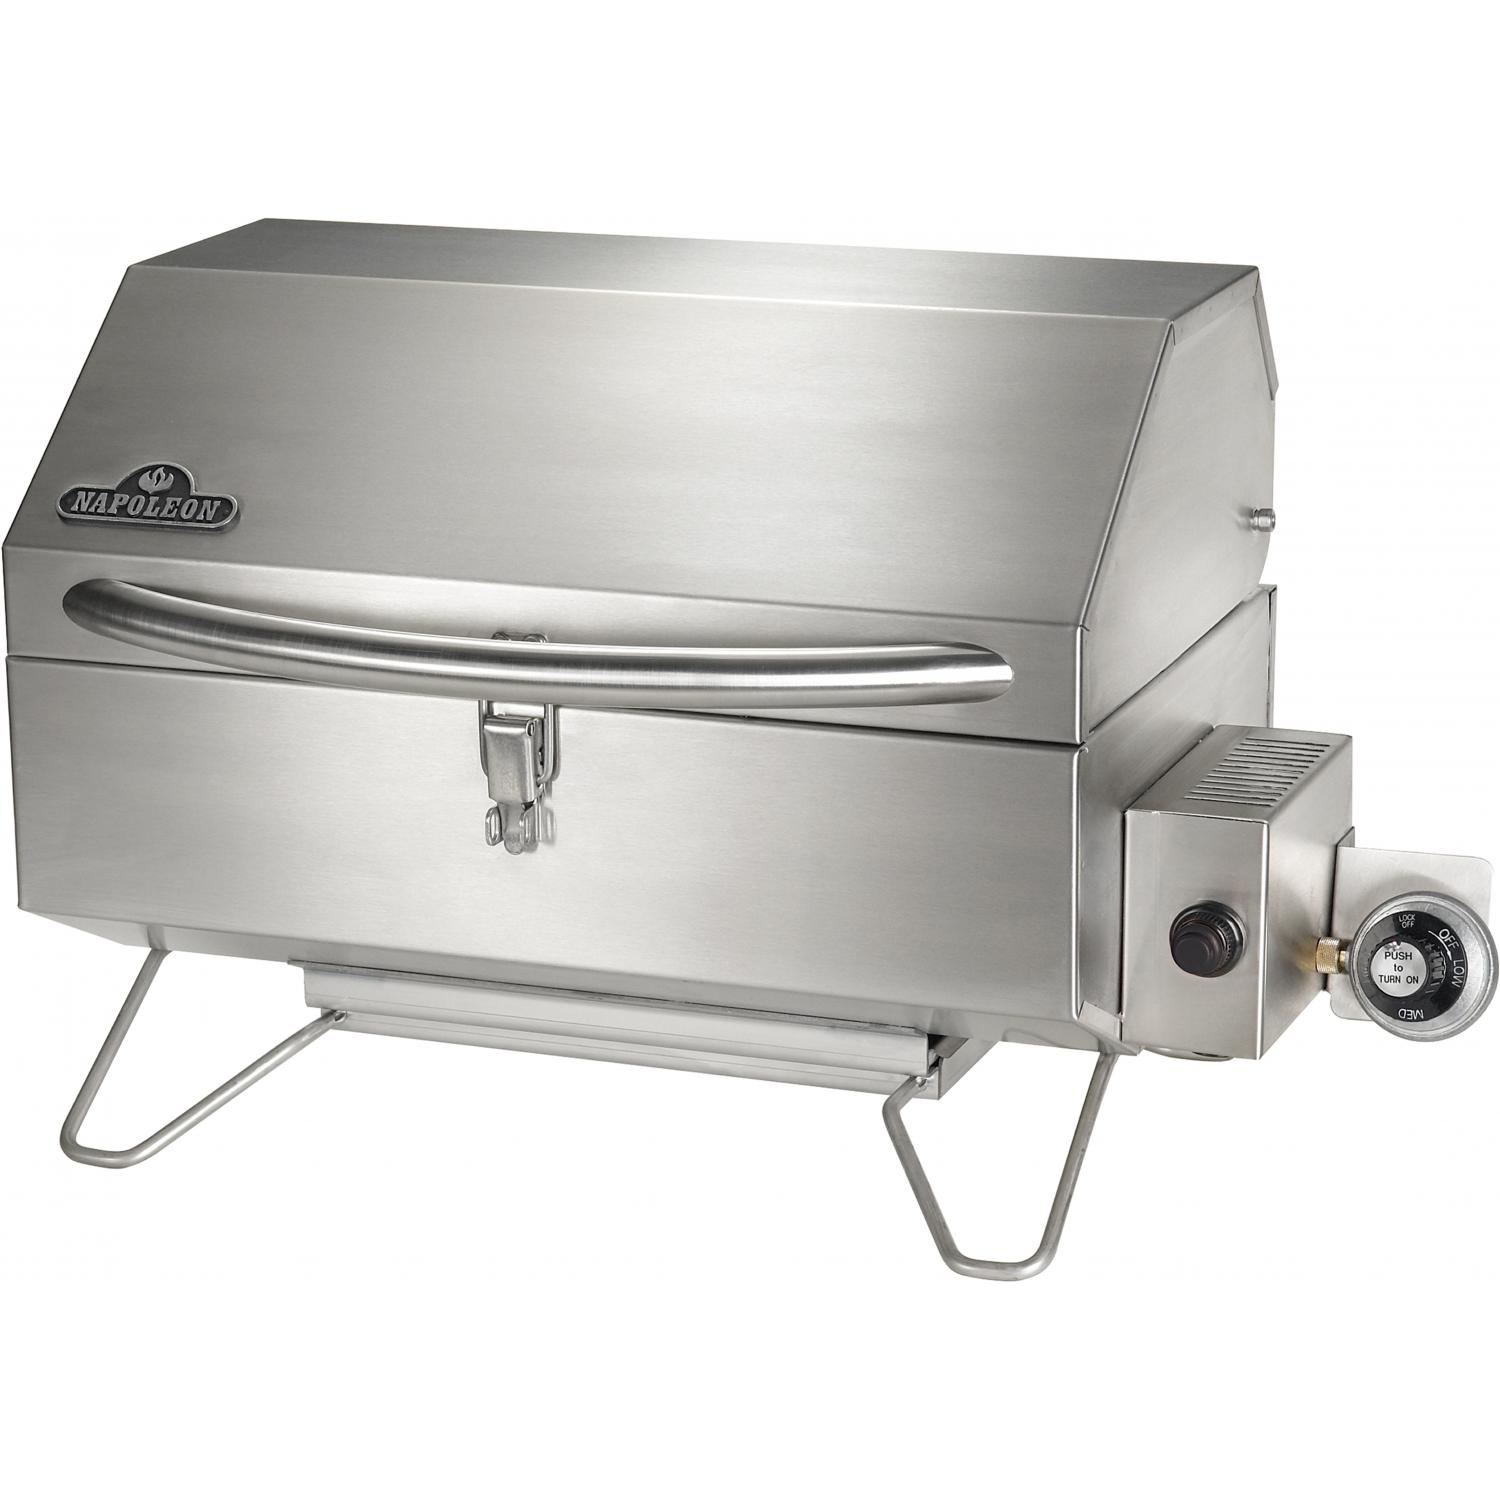 Napoleon Freestyle Portable 215 Series Propane Gas Grill